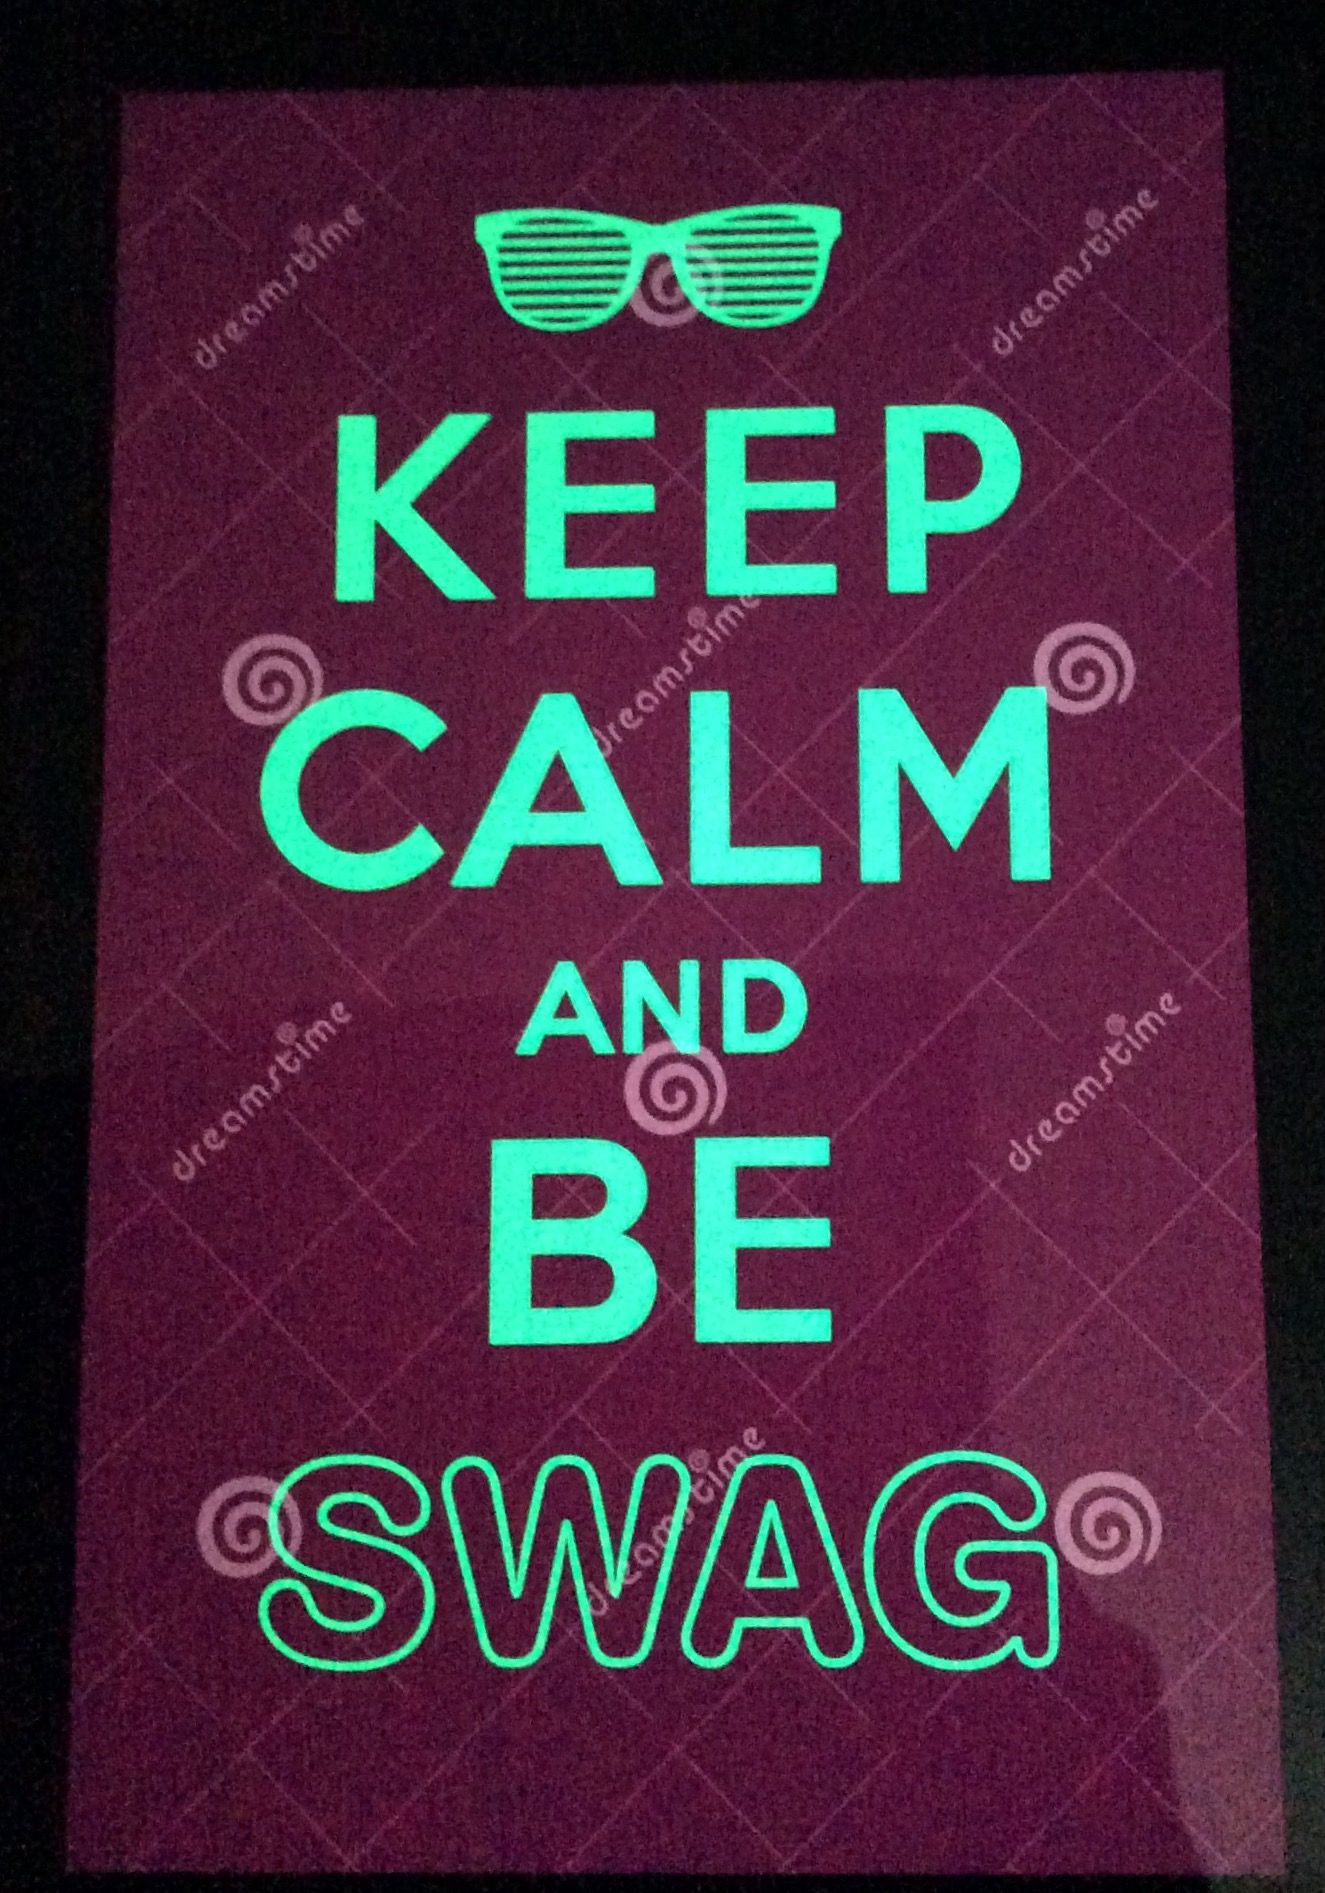 You always have to have swag